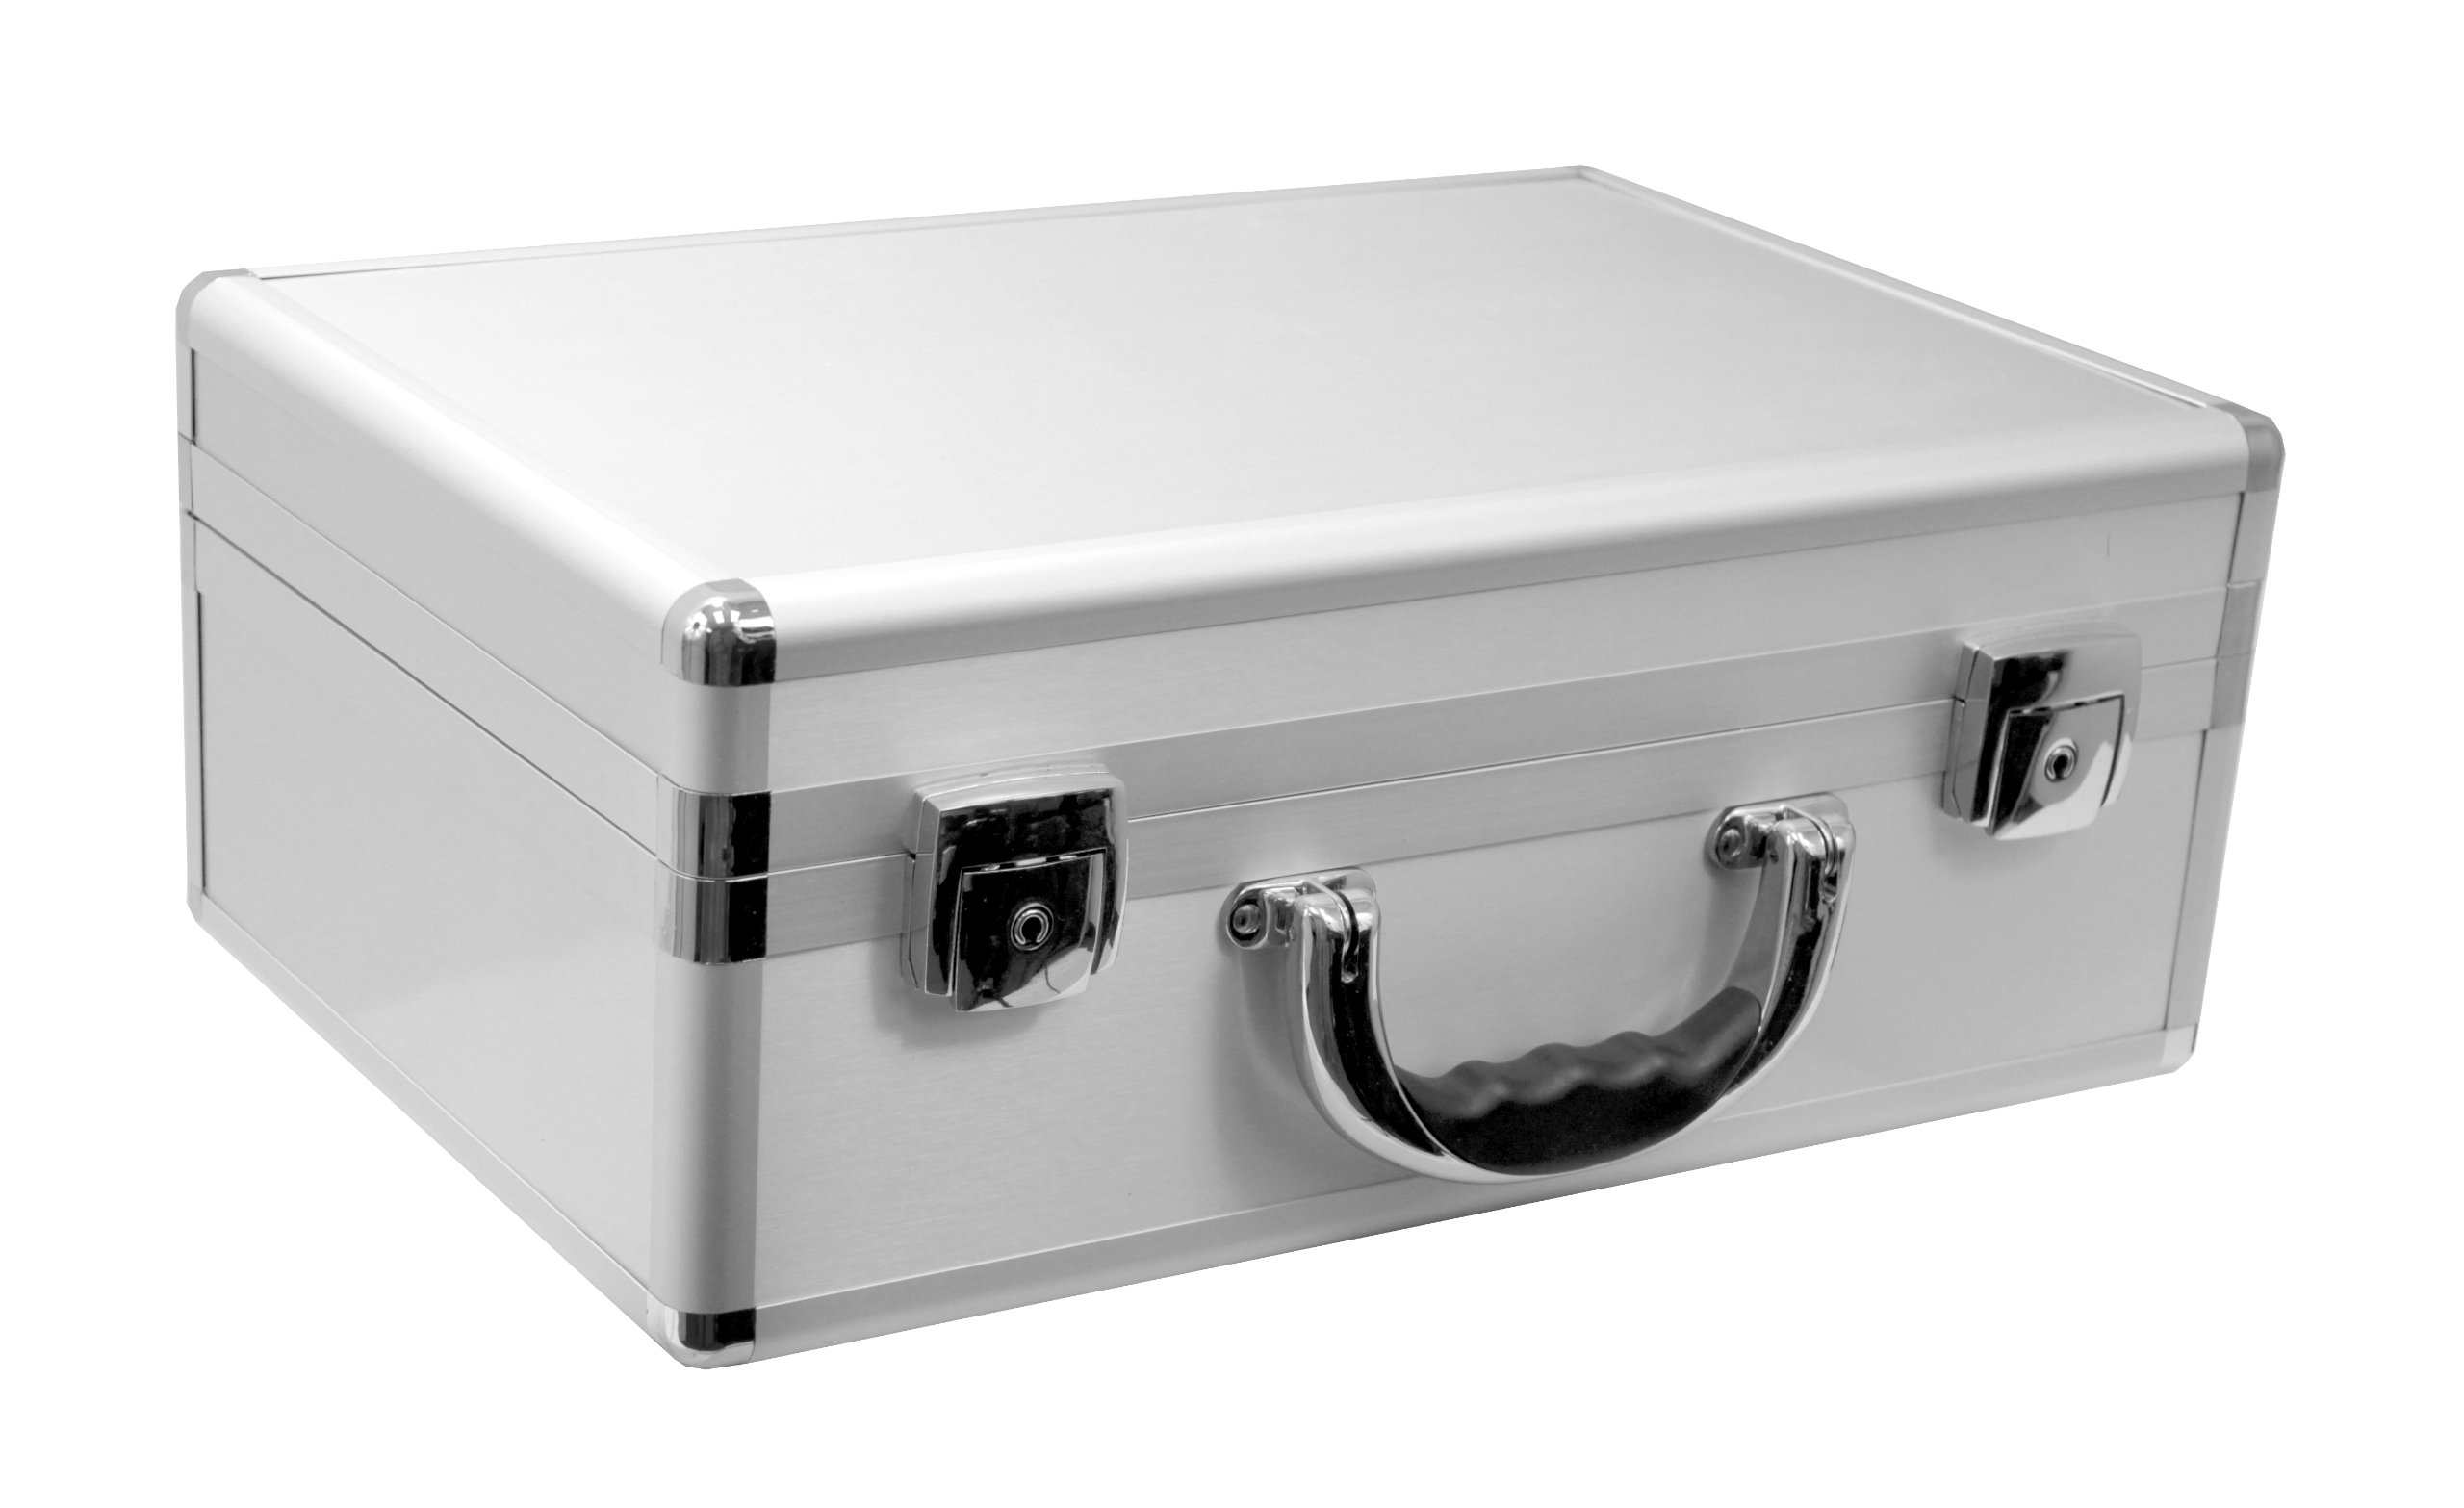 Cases By Source SV15106 Smooth Silver Aluminum Case with Foam, 15.125 x 10 x 5.75